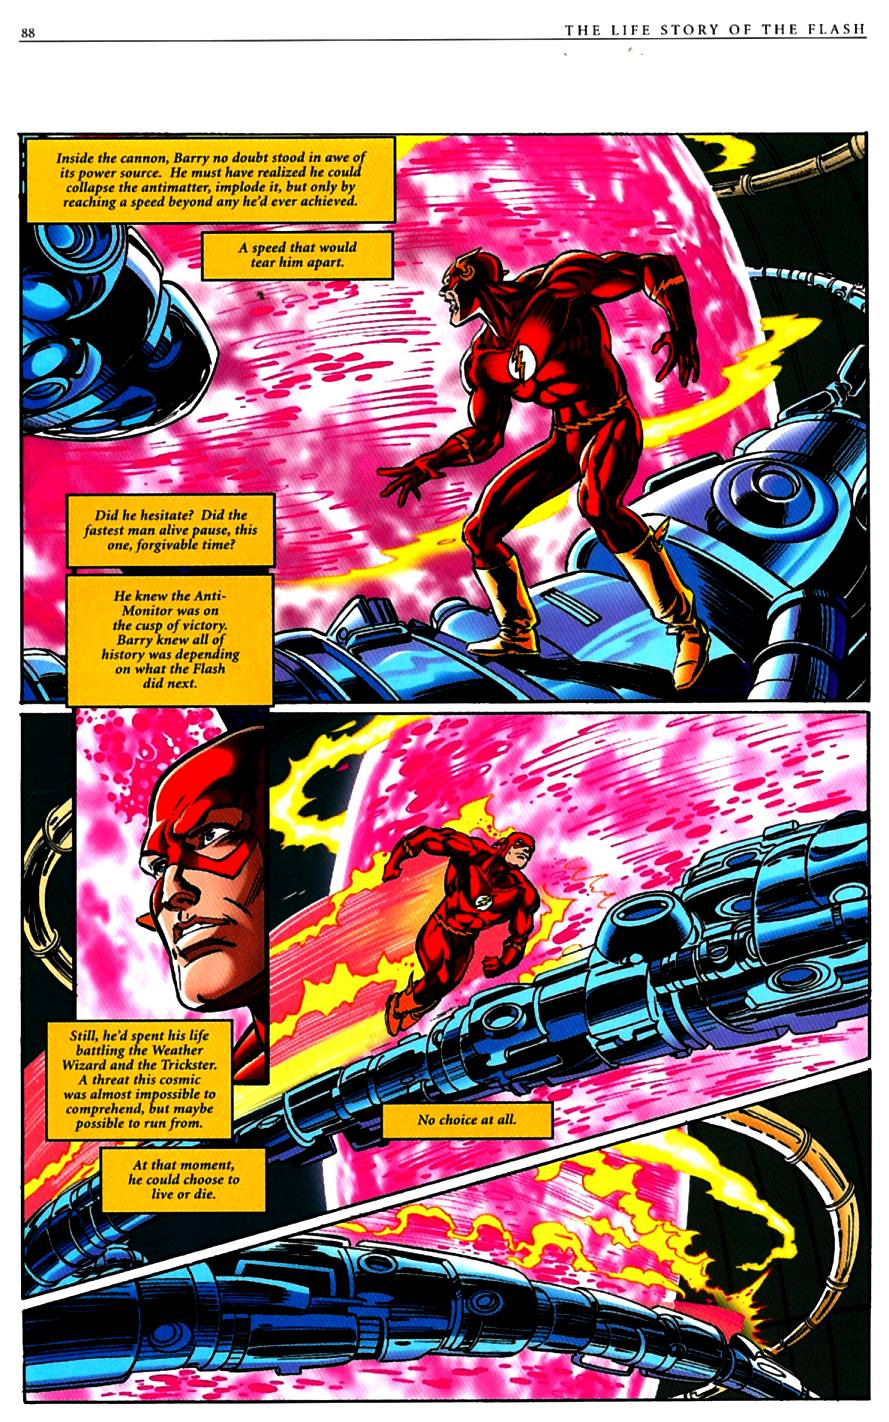 Read online The Life Story of the Flash comic -  Issue # Full - 90